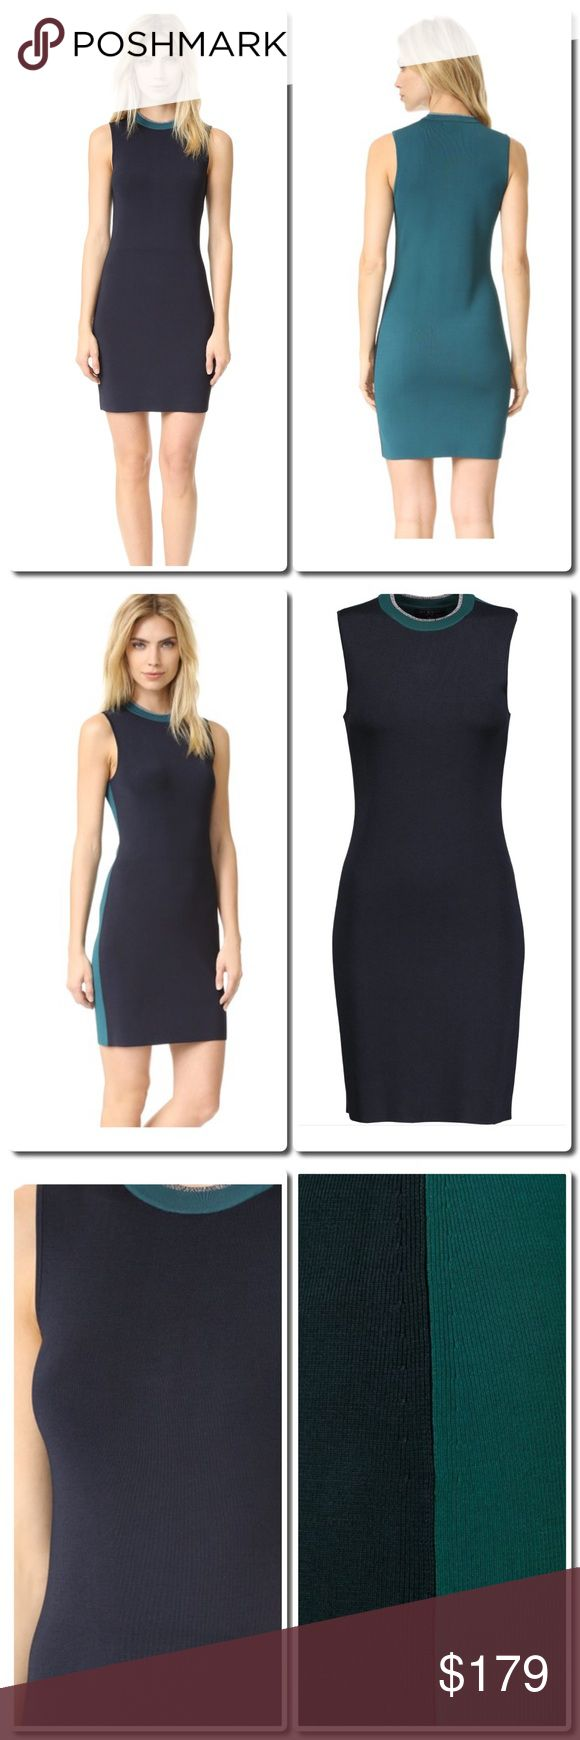 rag &a bone Color block Dress Rag & bone midnight-blue and petrol Lucine dress. Stretch-knit. Metallic ribbed neckline. Slips on. 86% viscose, 12% nylon, 2% spandex; trim: 79% viscose, 19% nylon, 2% spandex. Dry clean. Fits true to size, take your normal size. Designed for a close fit. Lightweight knit. Color: blue rag & bone Dresses Mini